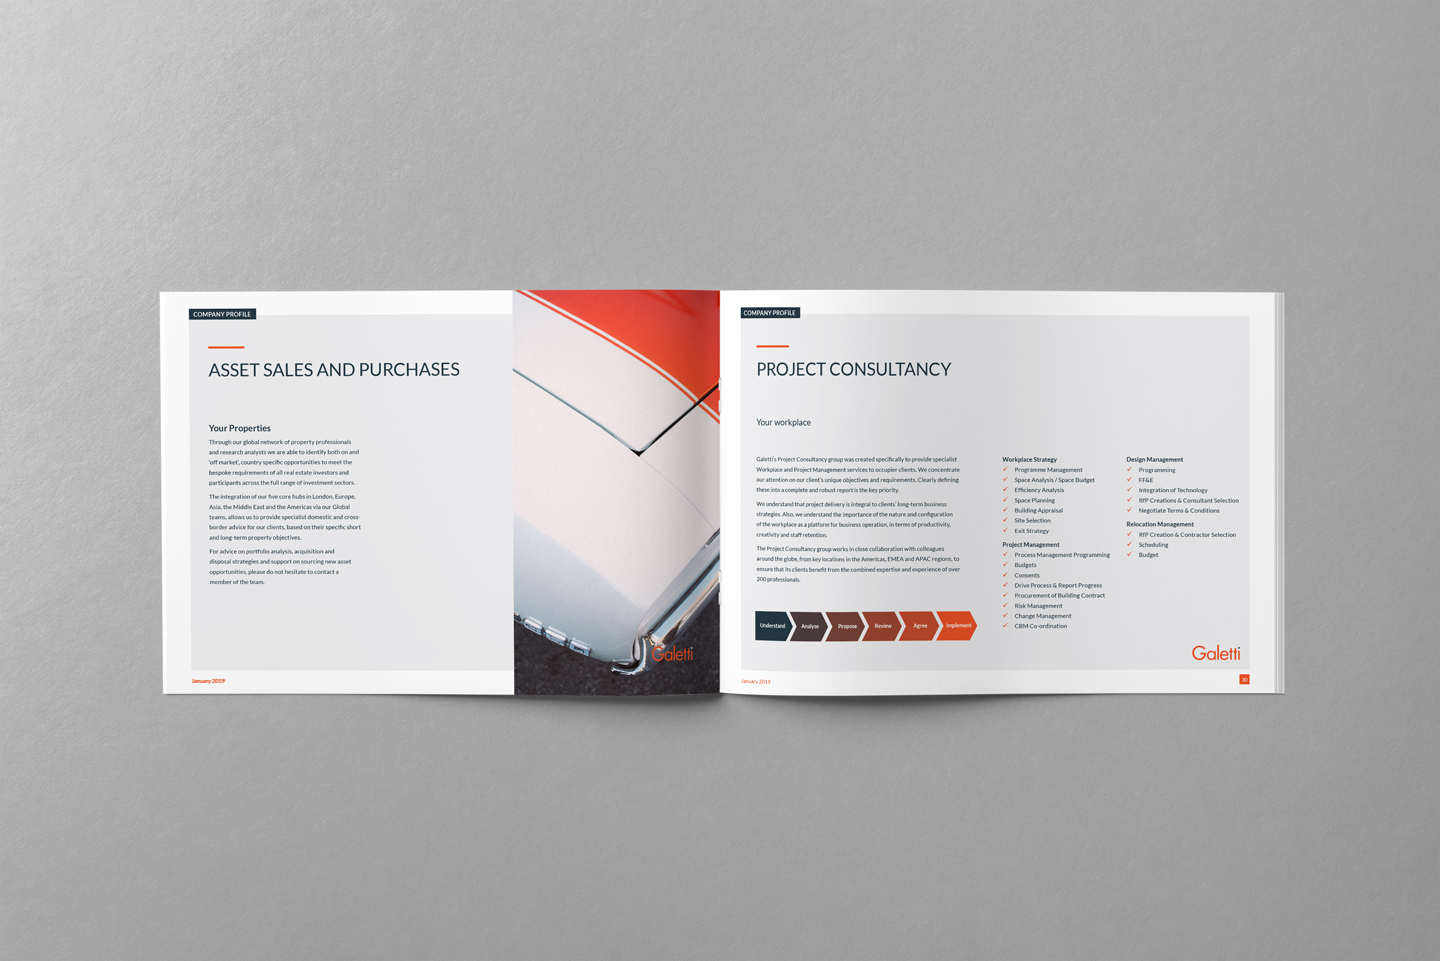 Galetti CRE corporate identity design 6